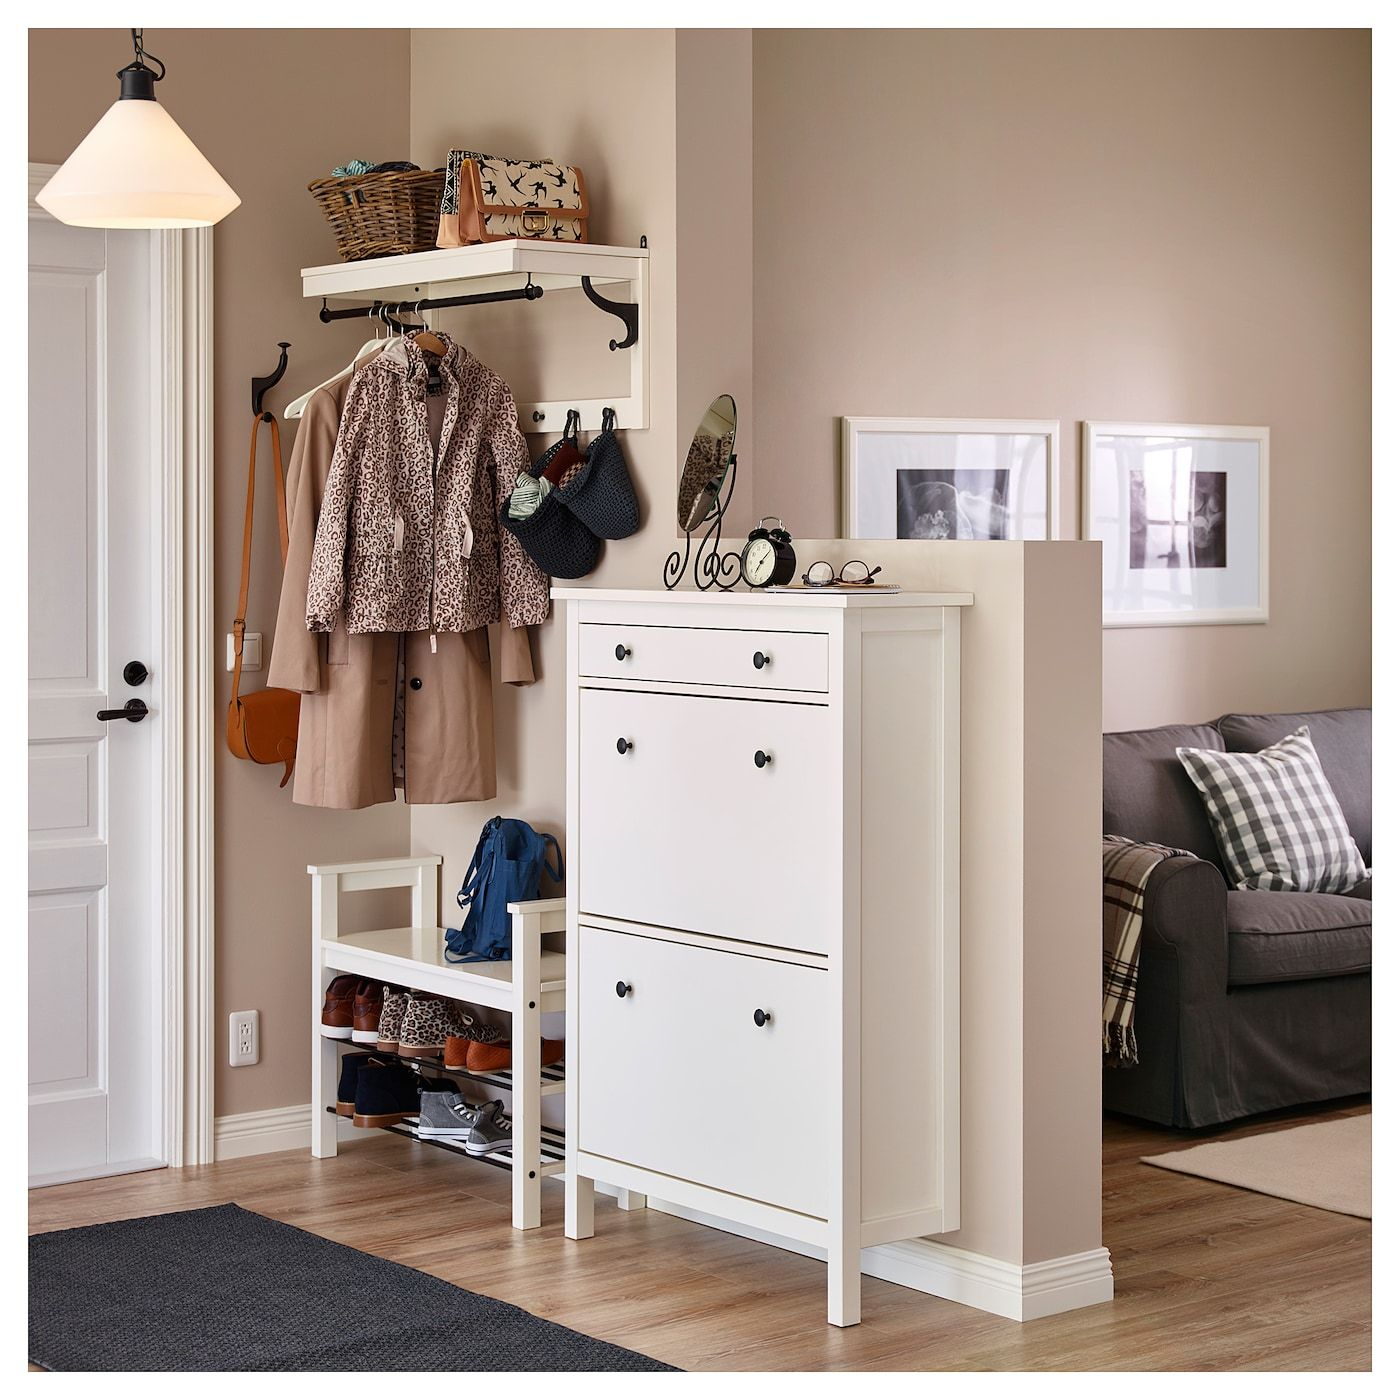 Hemnes Shoe Cabinet With 4 Compartments White 42 1 8x39 3 4 Ikea Ikea Shoe Cabinet Ikea Hemnes Shoe Cabinet Hemnes Shoe Cabinet